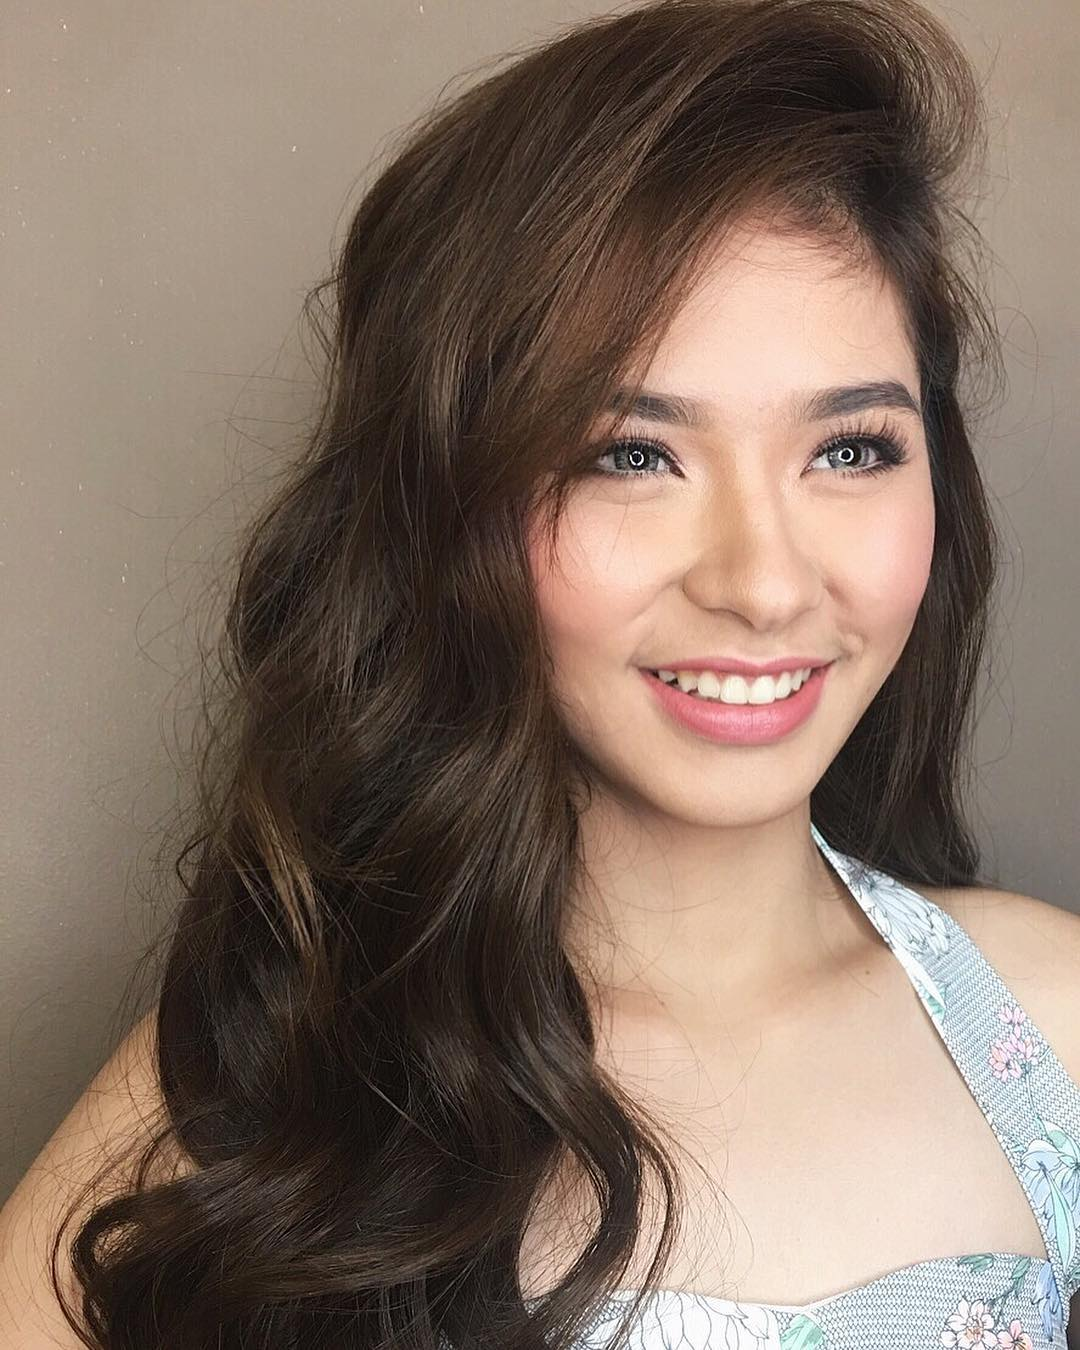 24 photos of Loisa Andalio that show she's the next big star